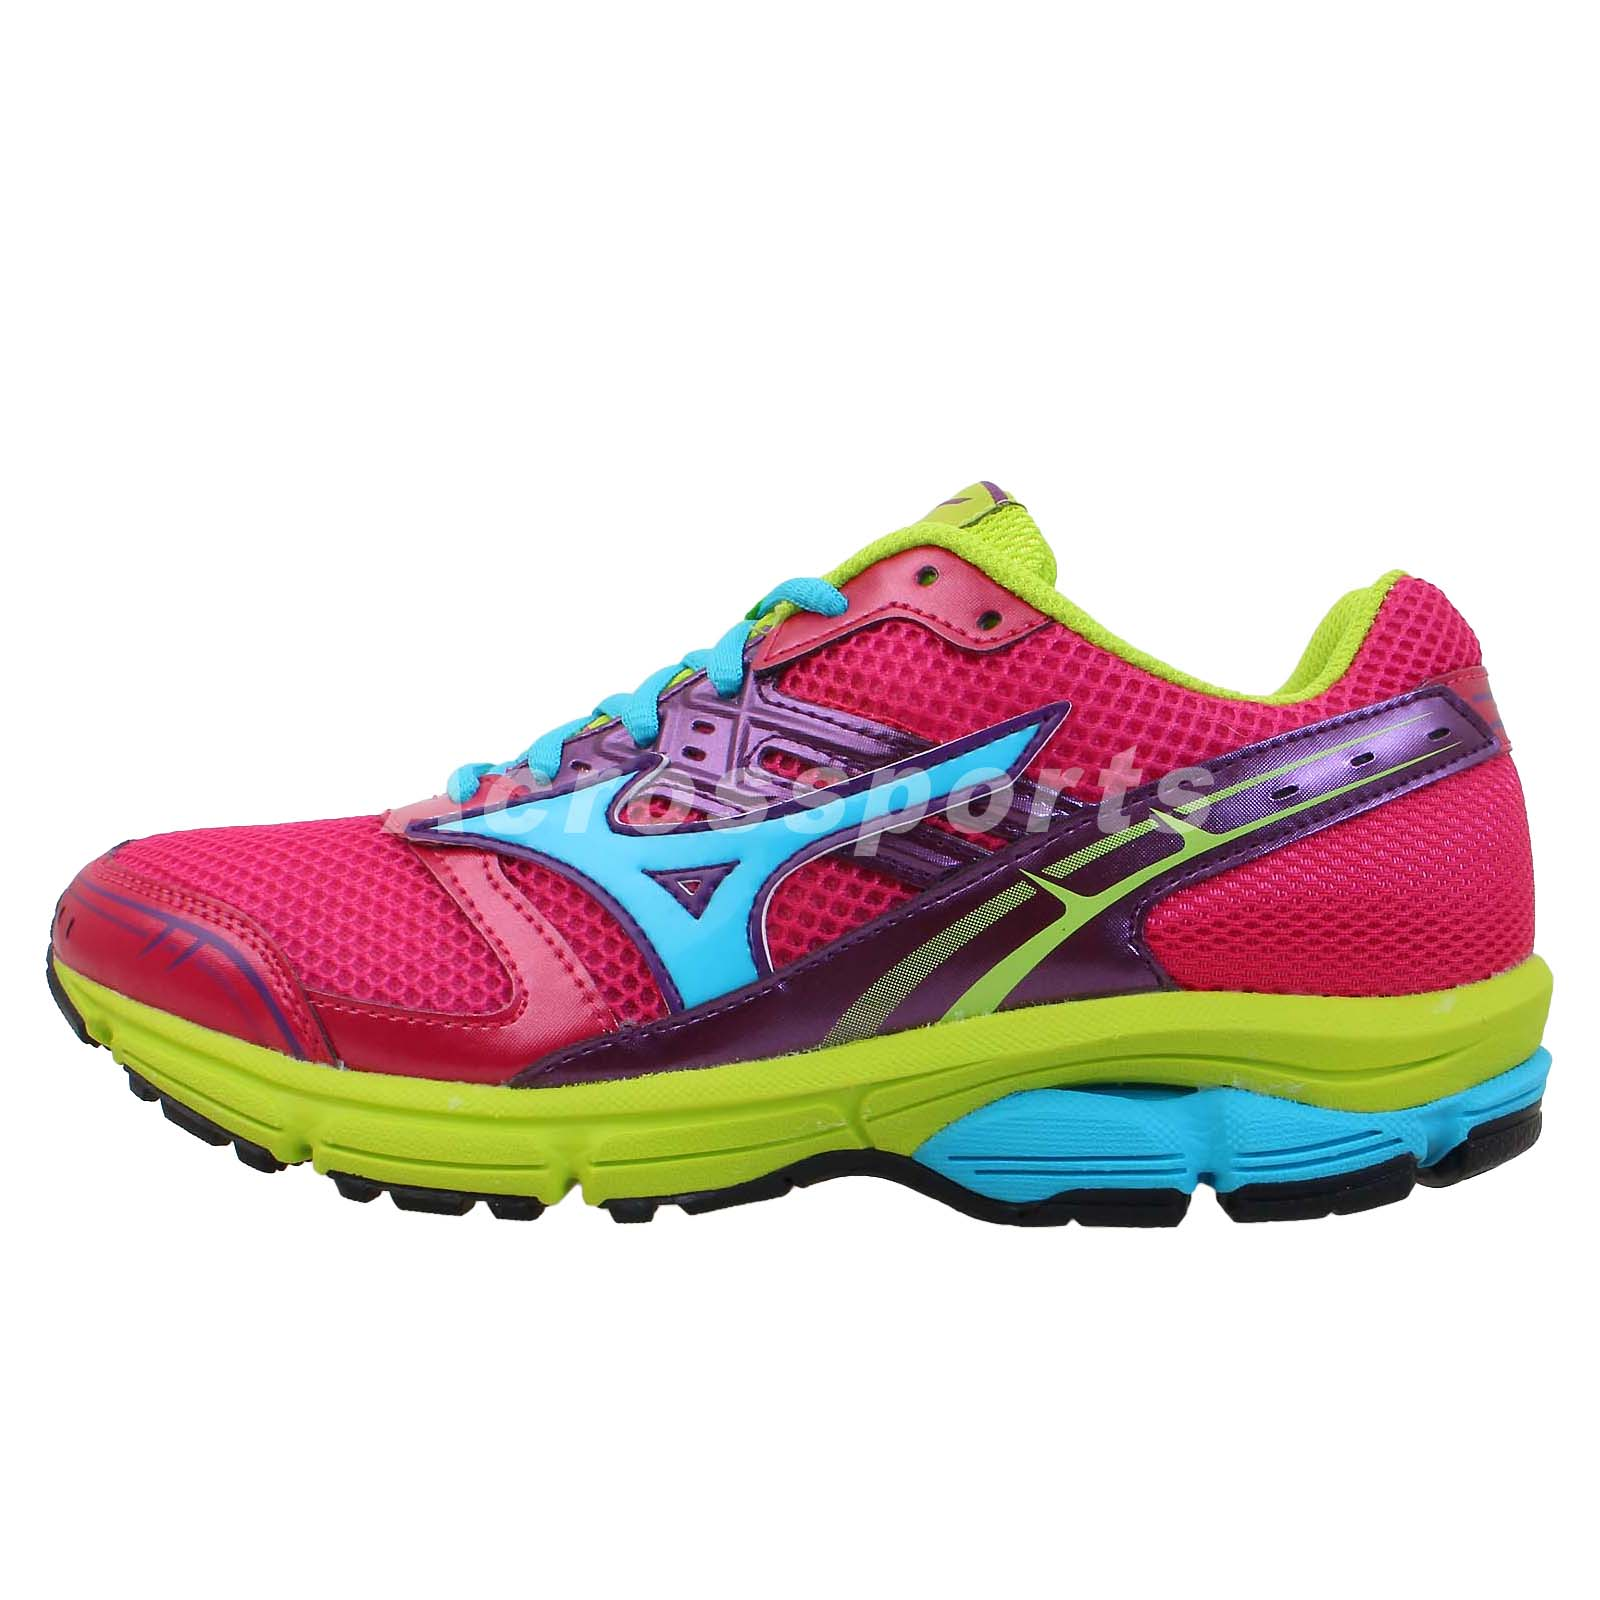 Rainbow Colored Running Shoes Women